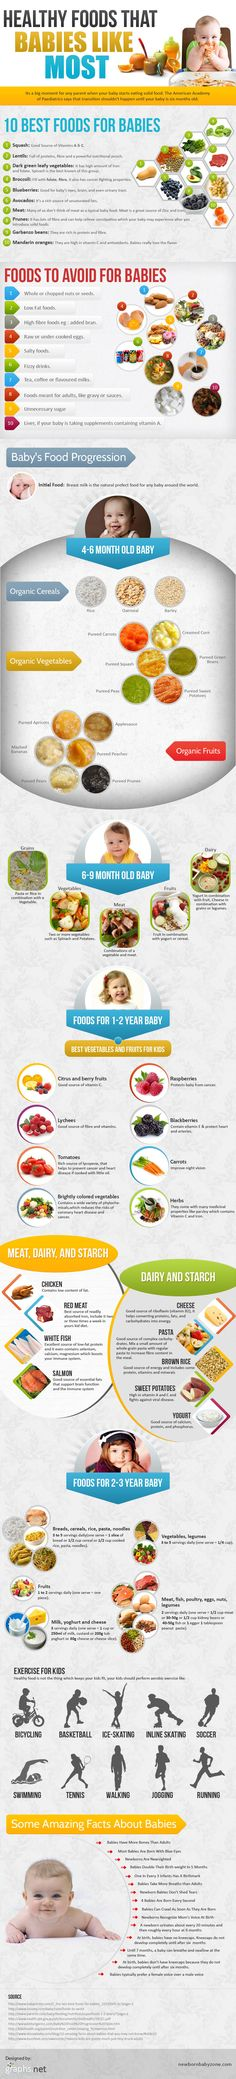 Healthy Foods That Babies Like Most. While I don't think pasta or gluten will have much of a place in my baby's diet, these are great guidelines!